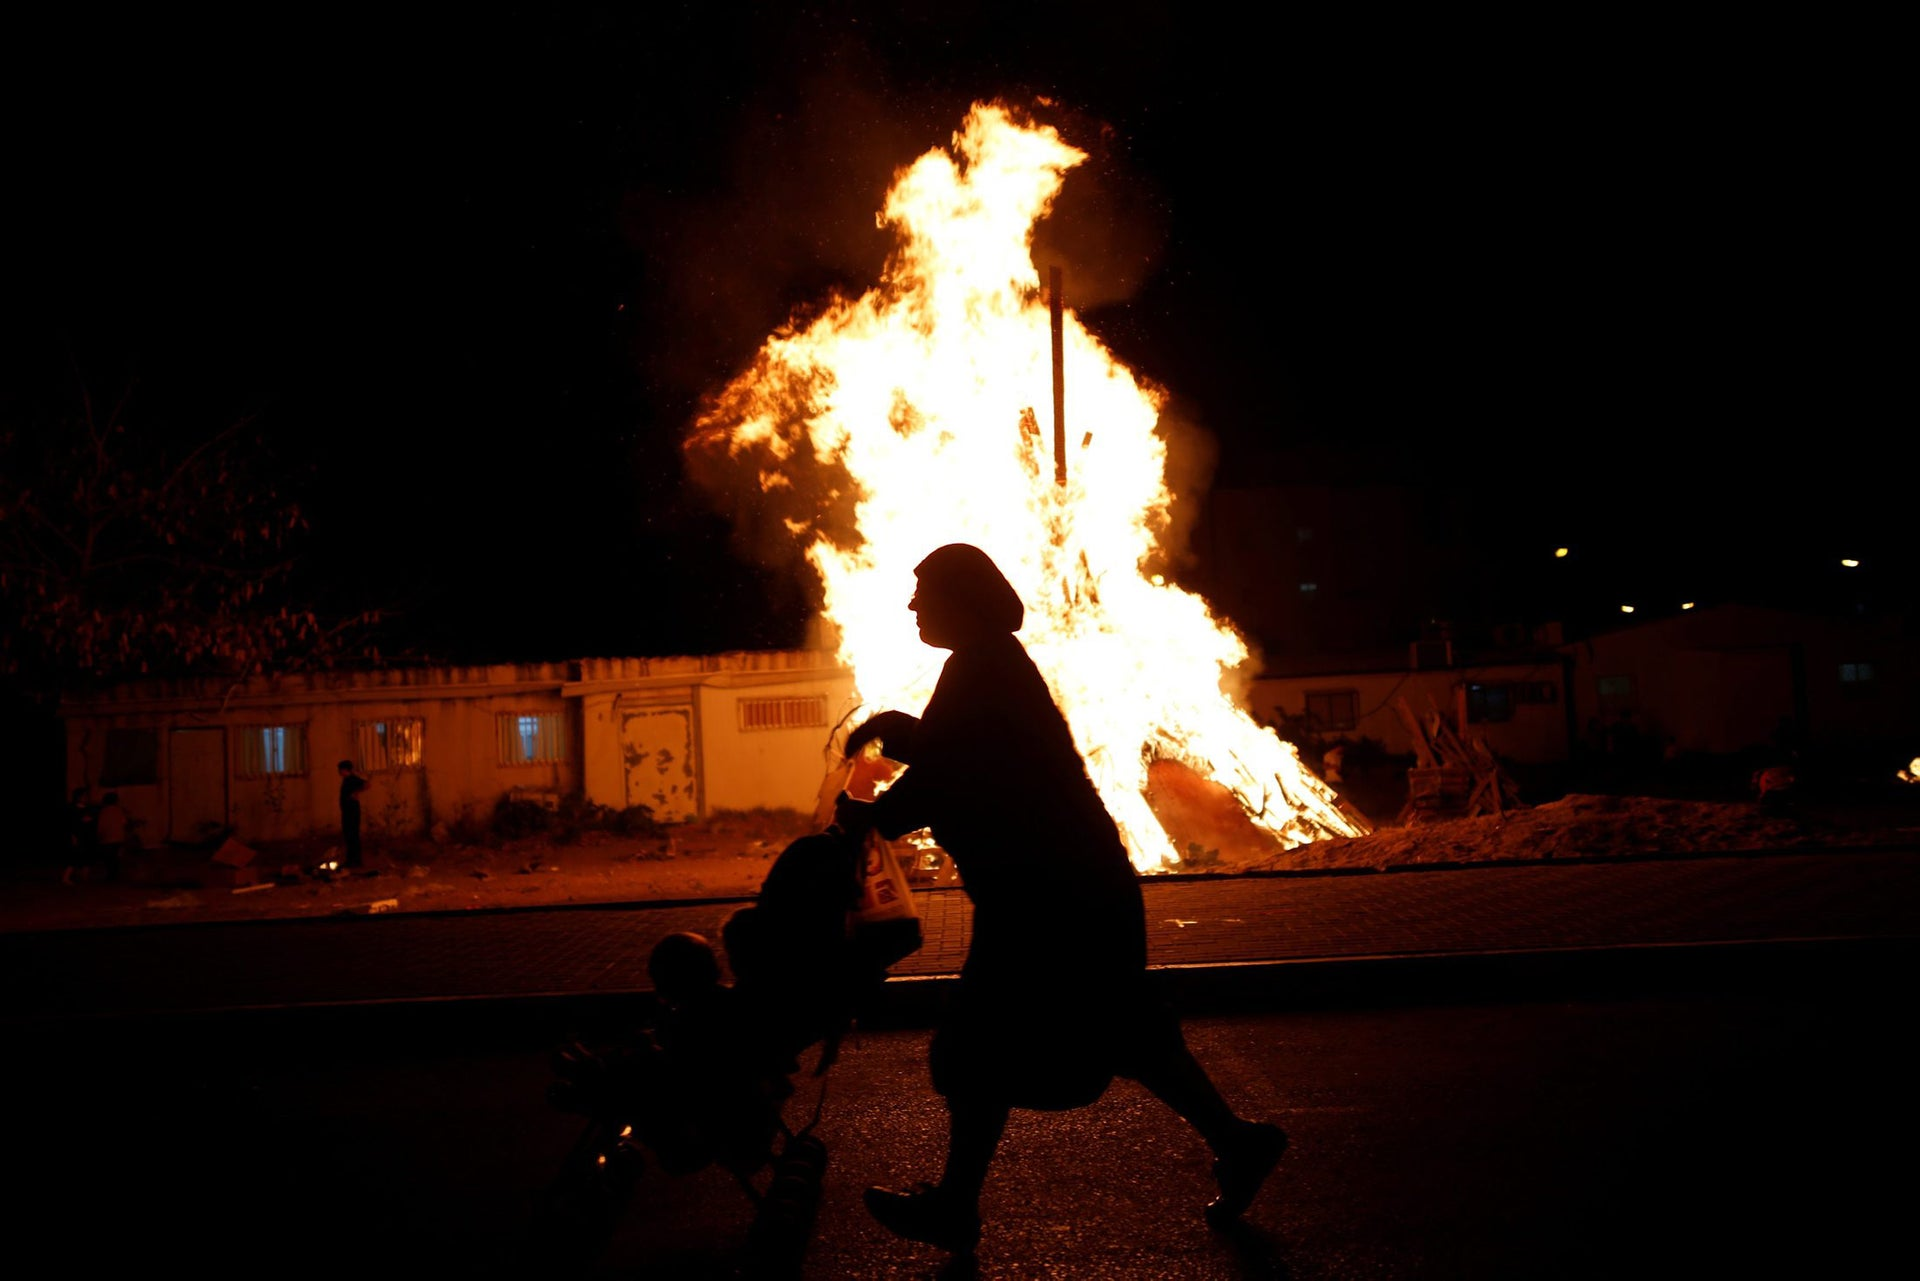 An Ultra-Orthodox Jewish woman walks with a stroller near a bonfire, as she celebrates the Jewish holiday of Lag Ba'Omer in the city of Ashdod, Israel May 25, 2016.